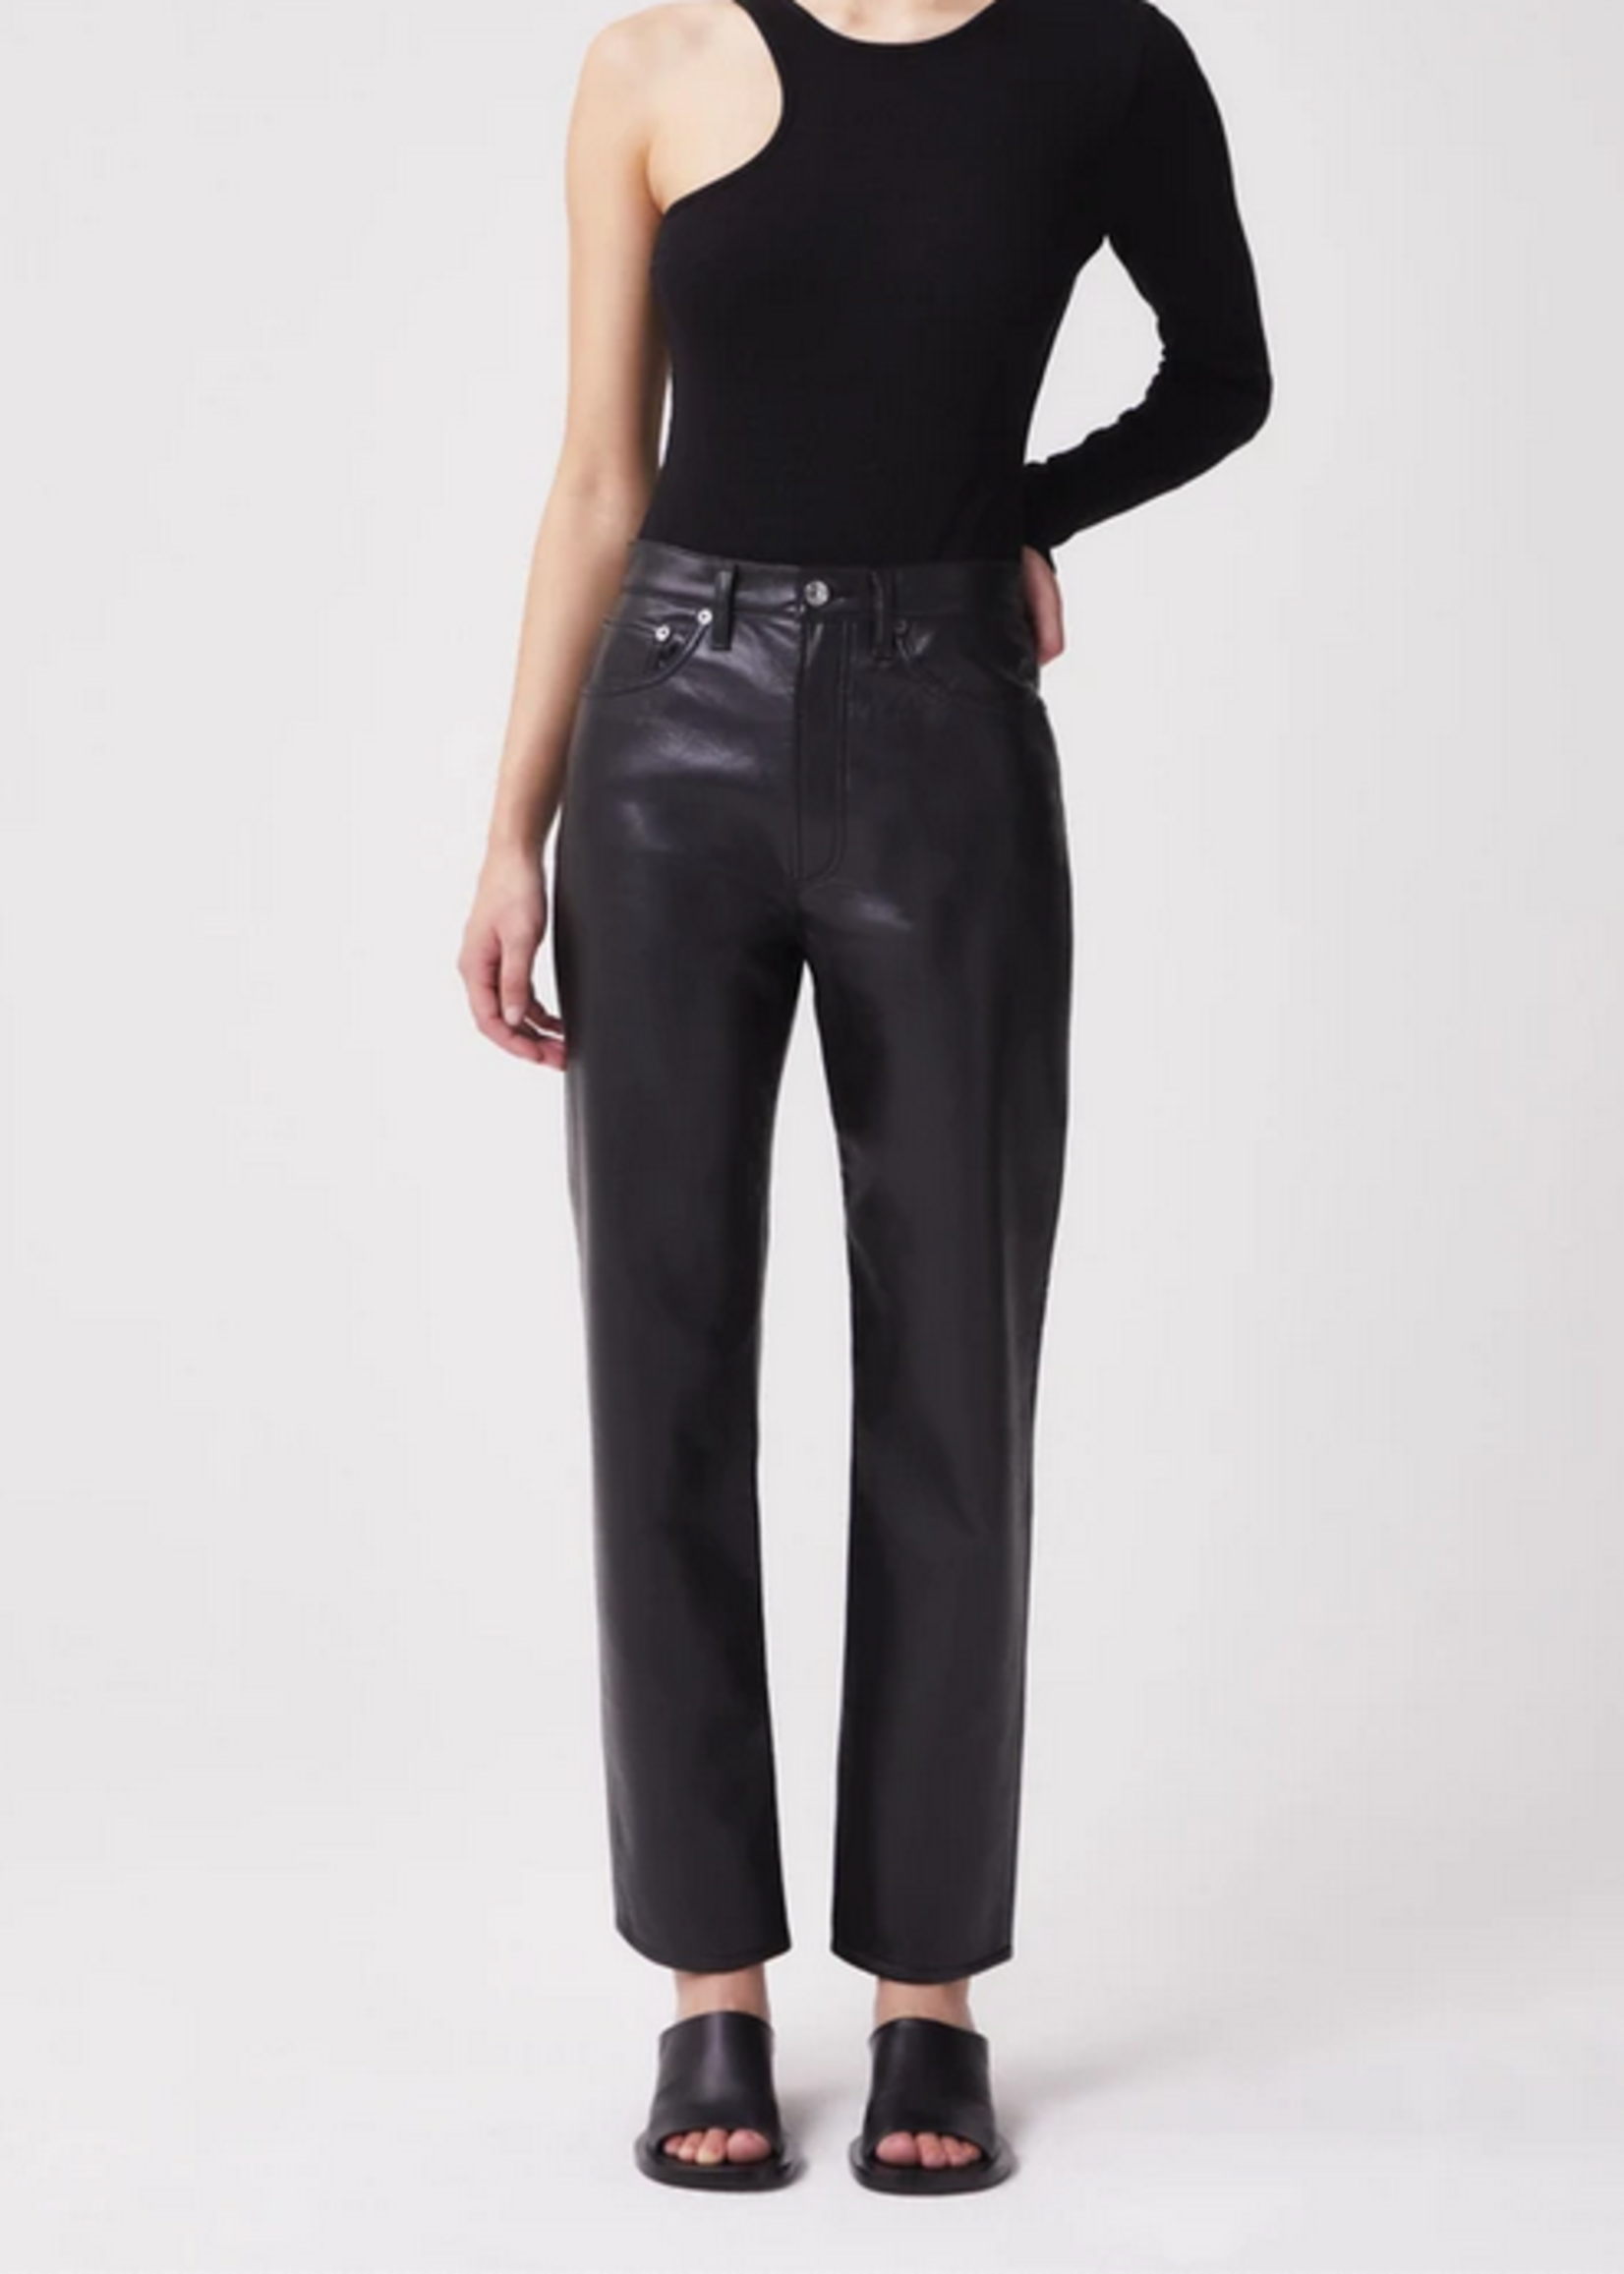 Elitaire Boutique Recycled Leather 90's Pinch Waist Pant